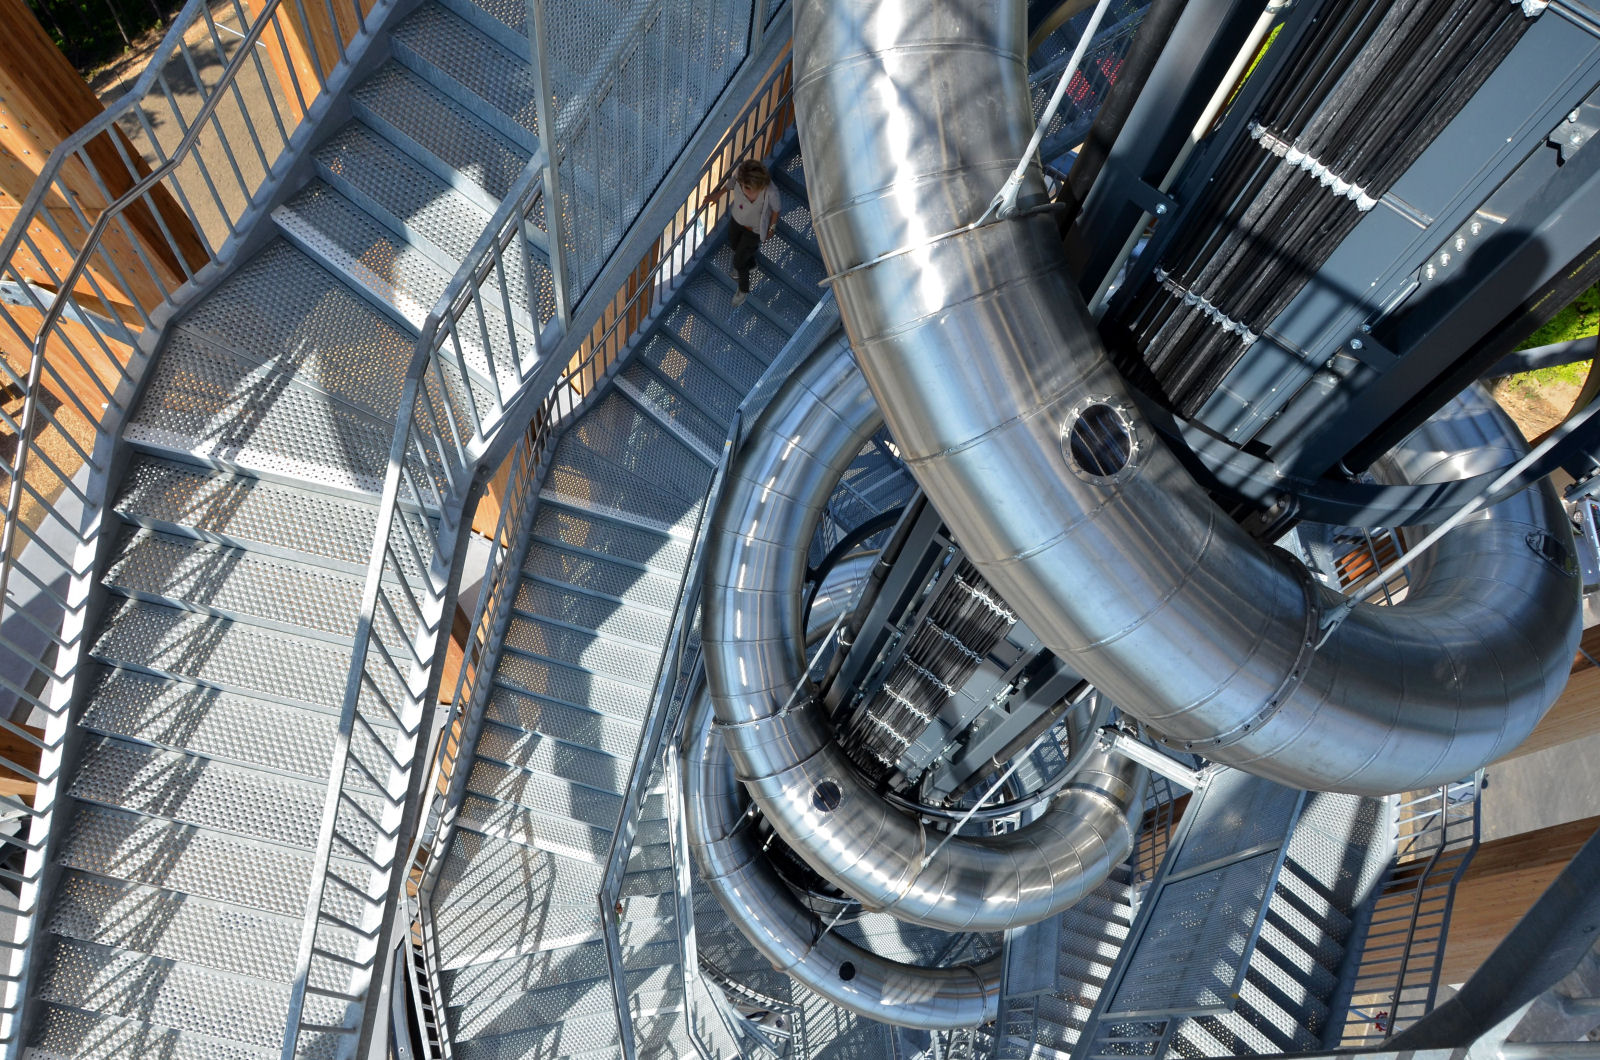 Slide, elevator and staircases of the Pyramidenkogel observation tower